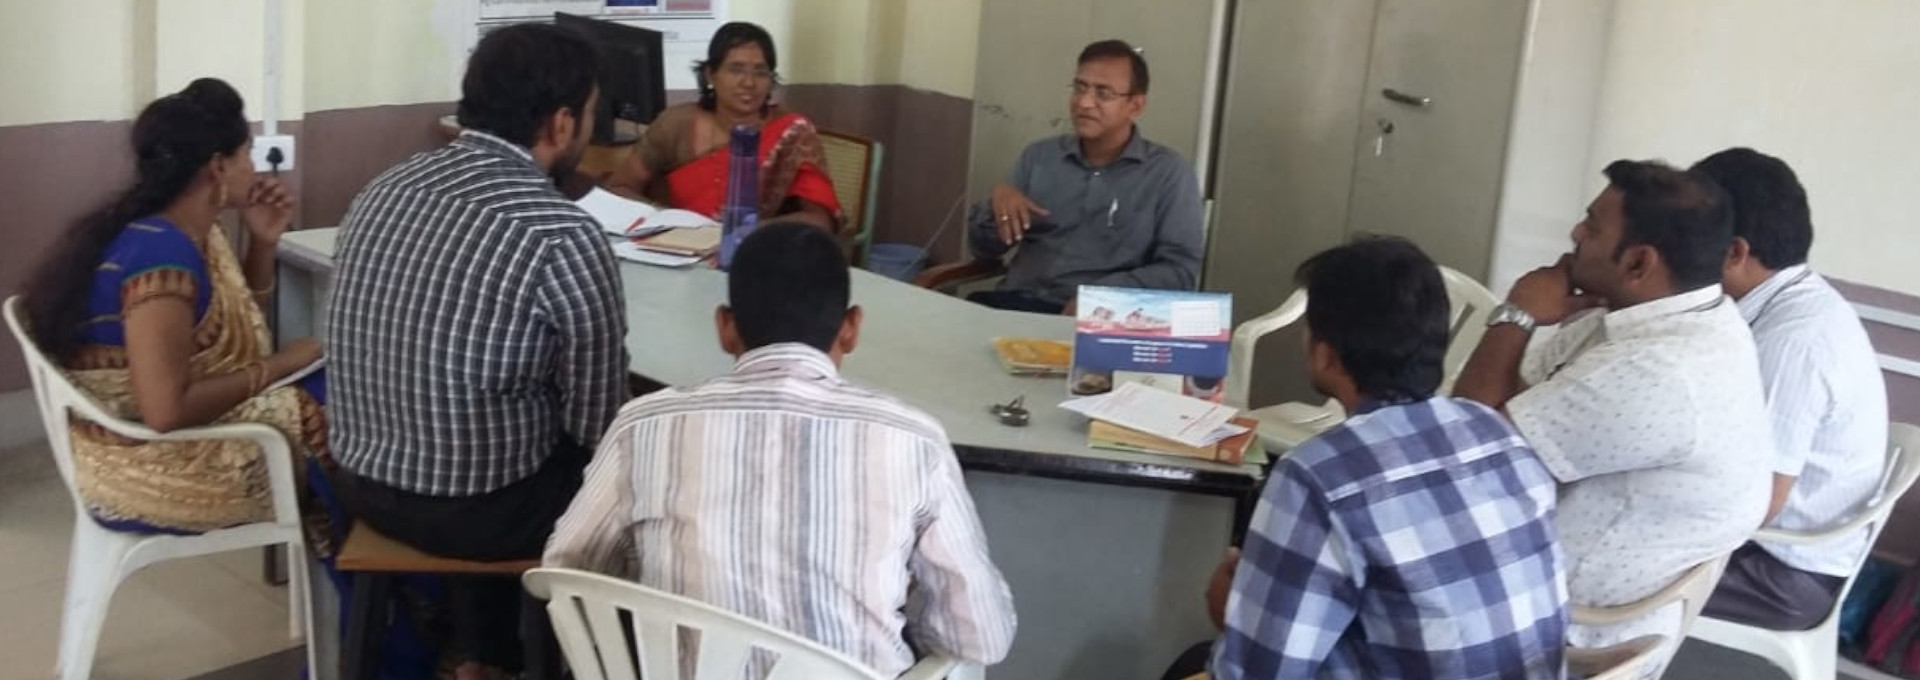 Discussion with Faculty on Innovative Labs for Physics & Chemistry